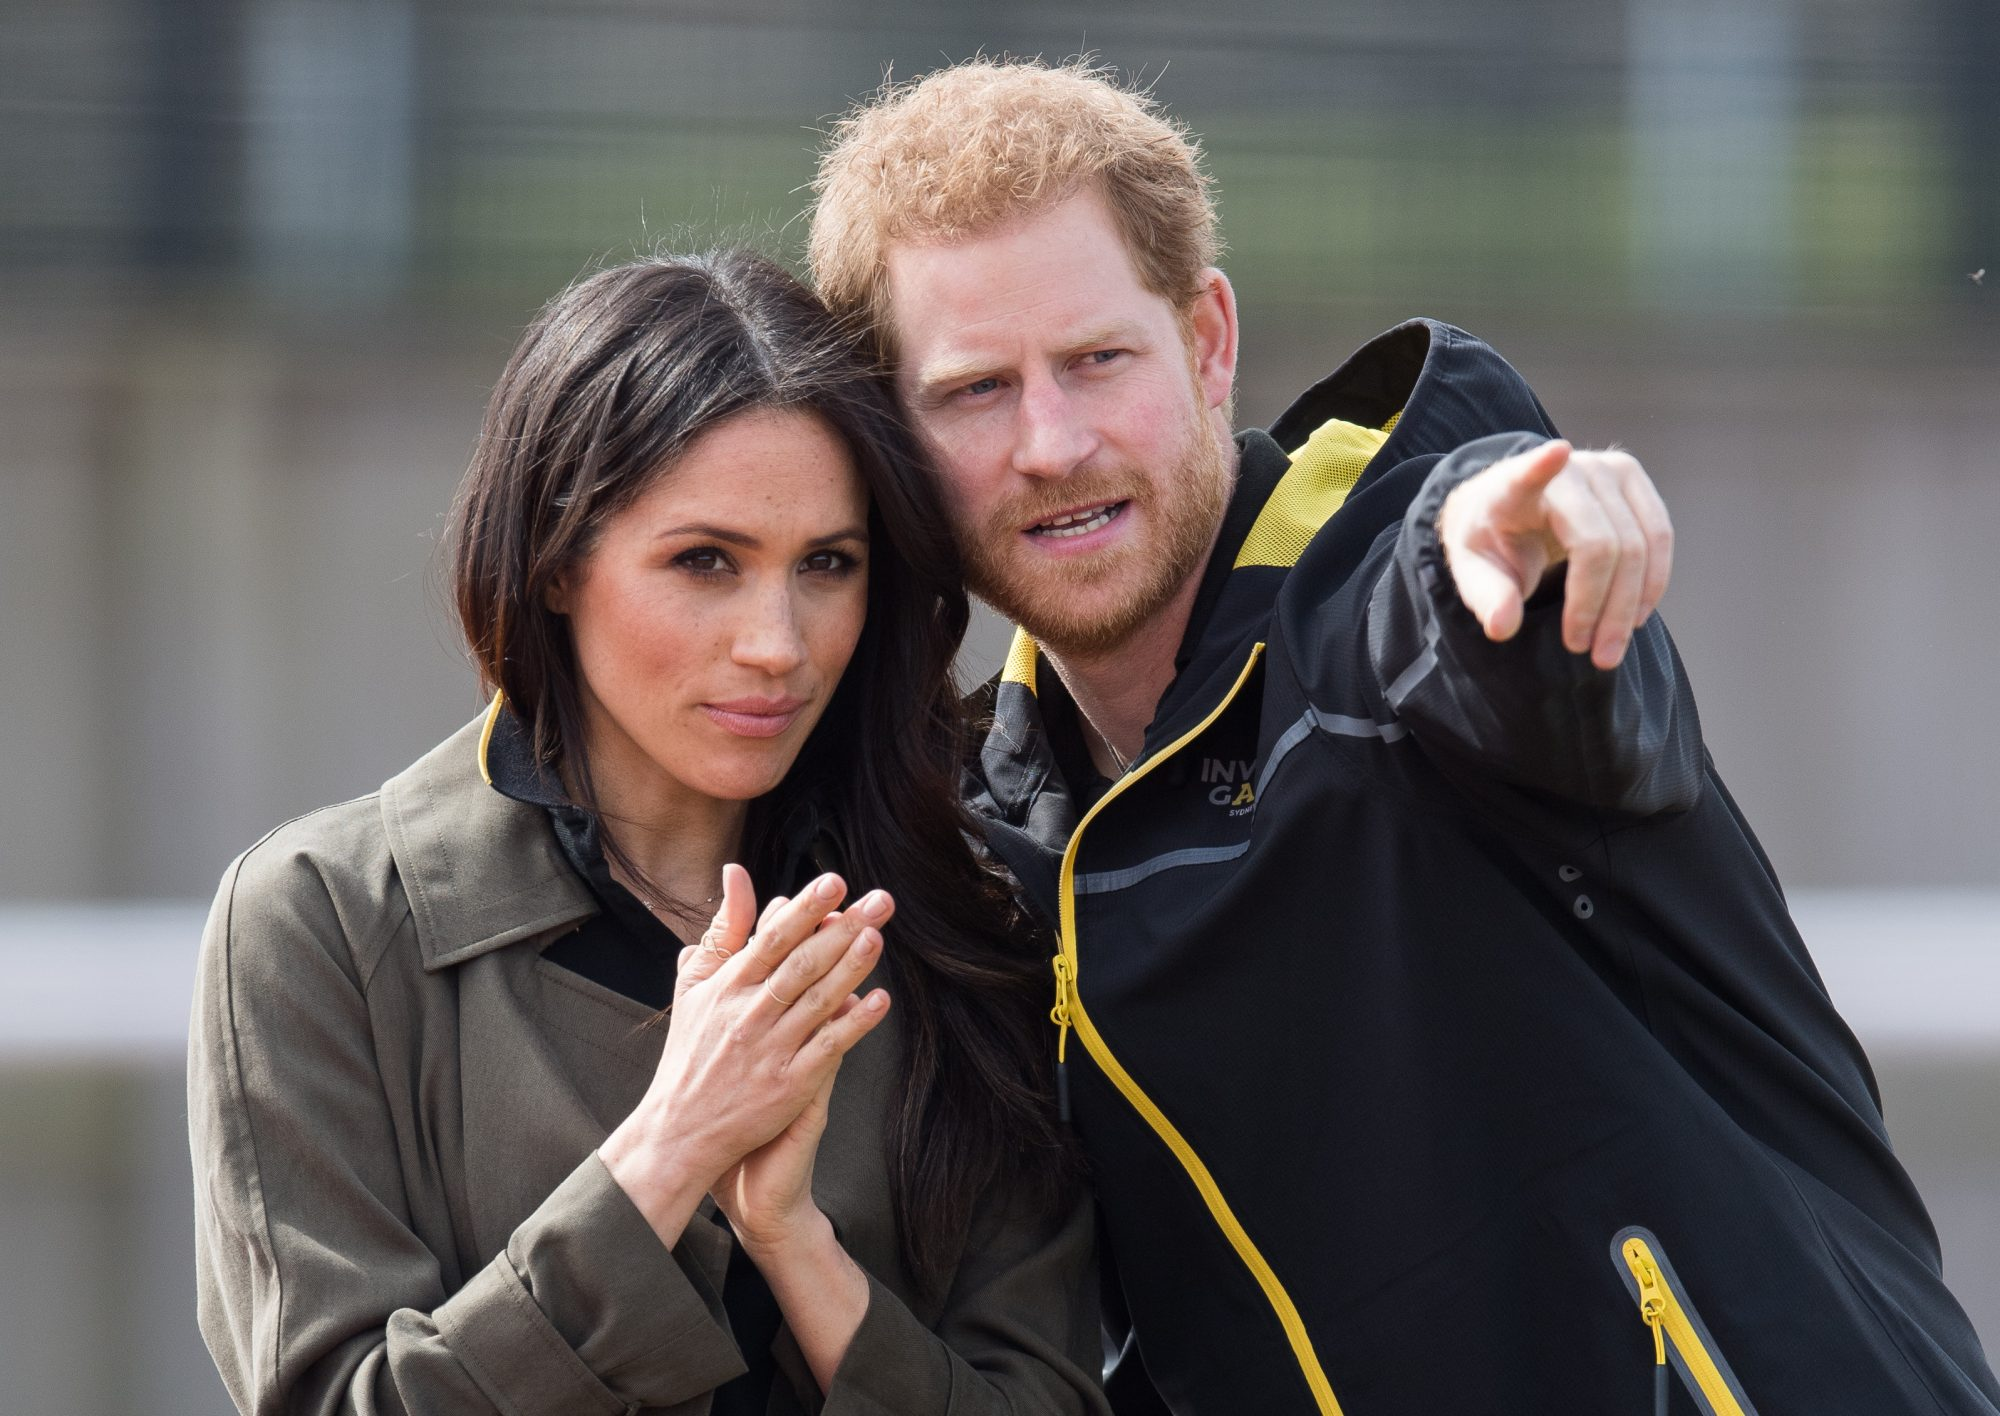 What Prince Harry and Meghan Markle Want for Their Wedding